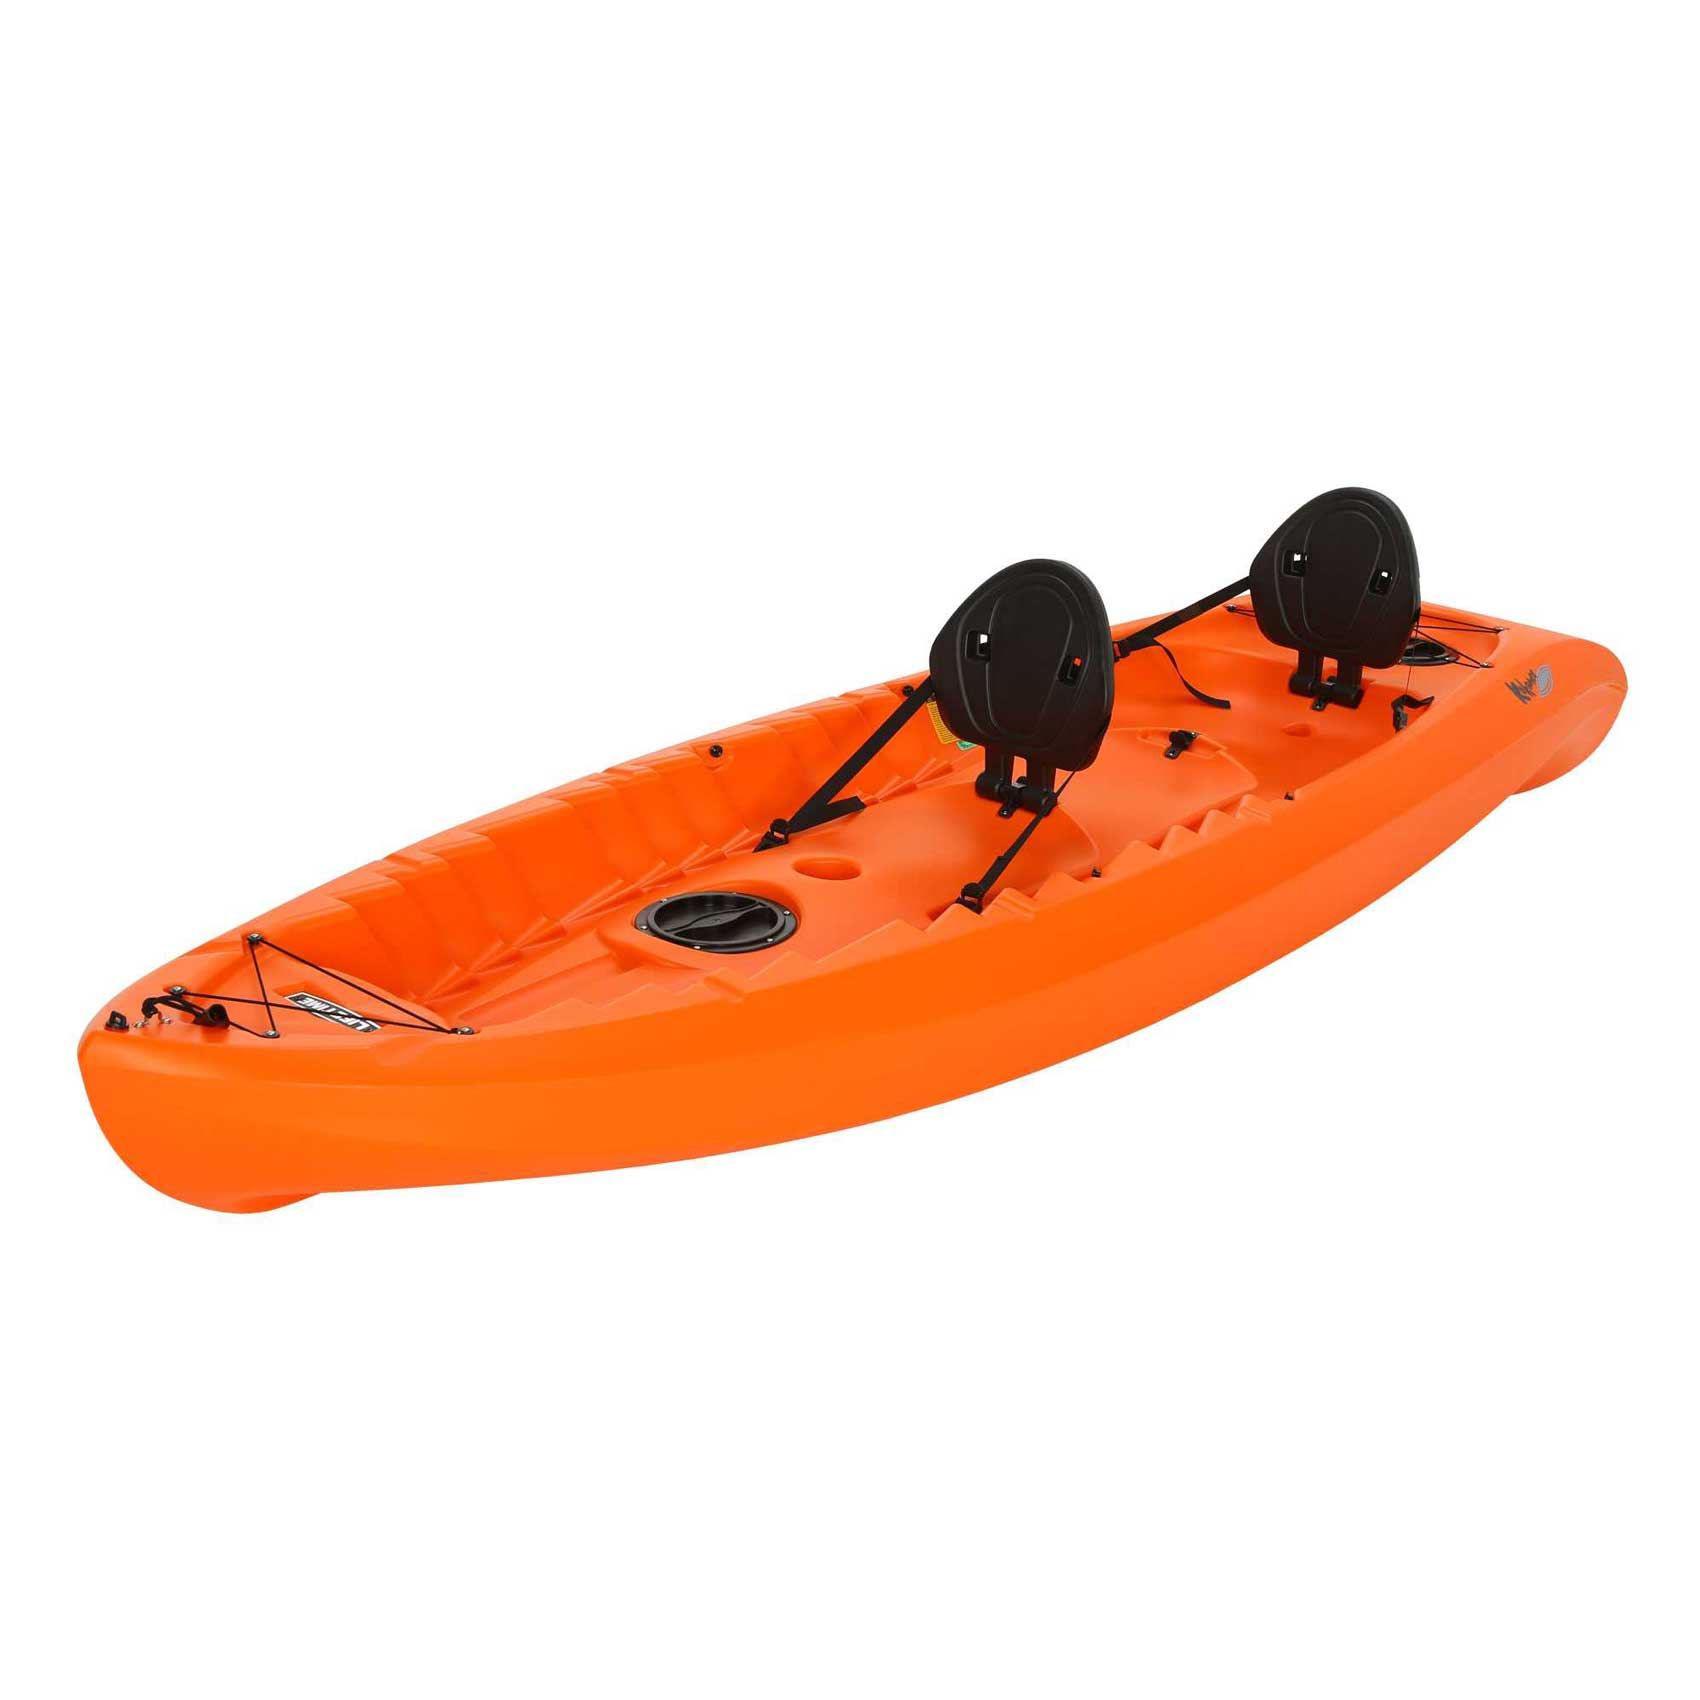 Lifetime 90537 Flatwater Orange Kokanee 105 Ft Kayak